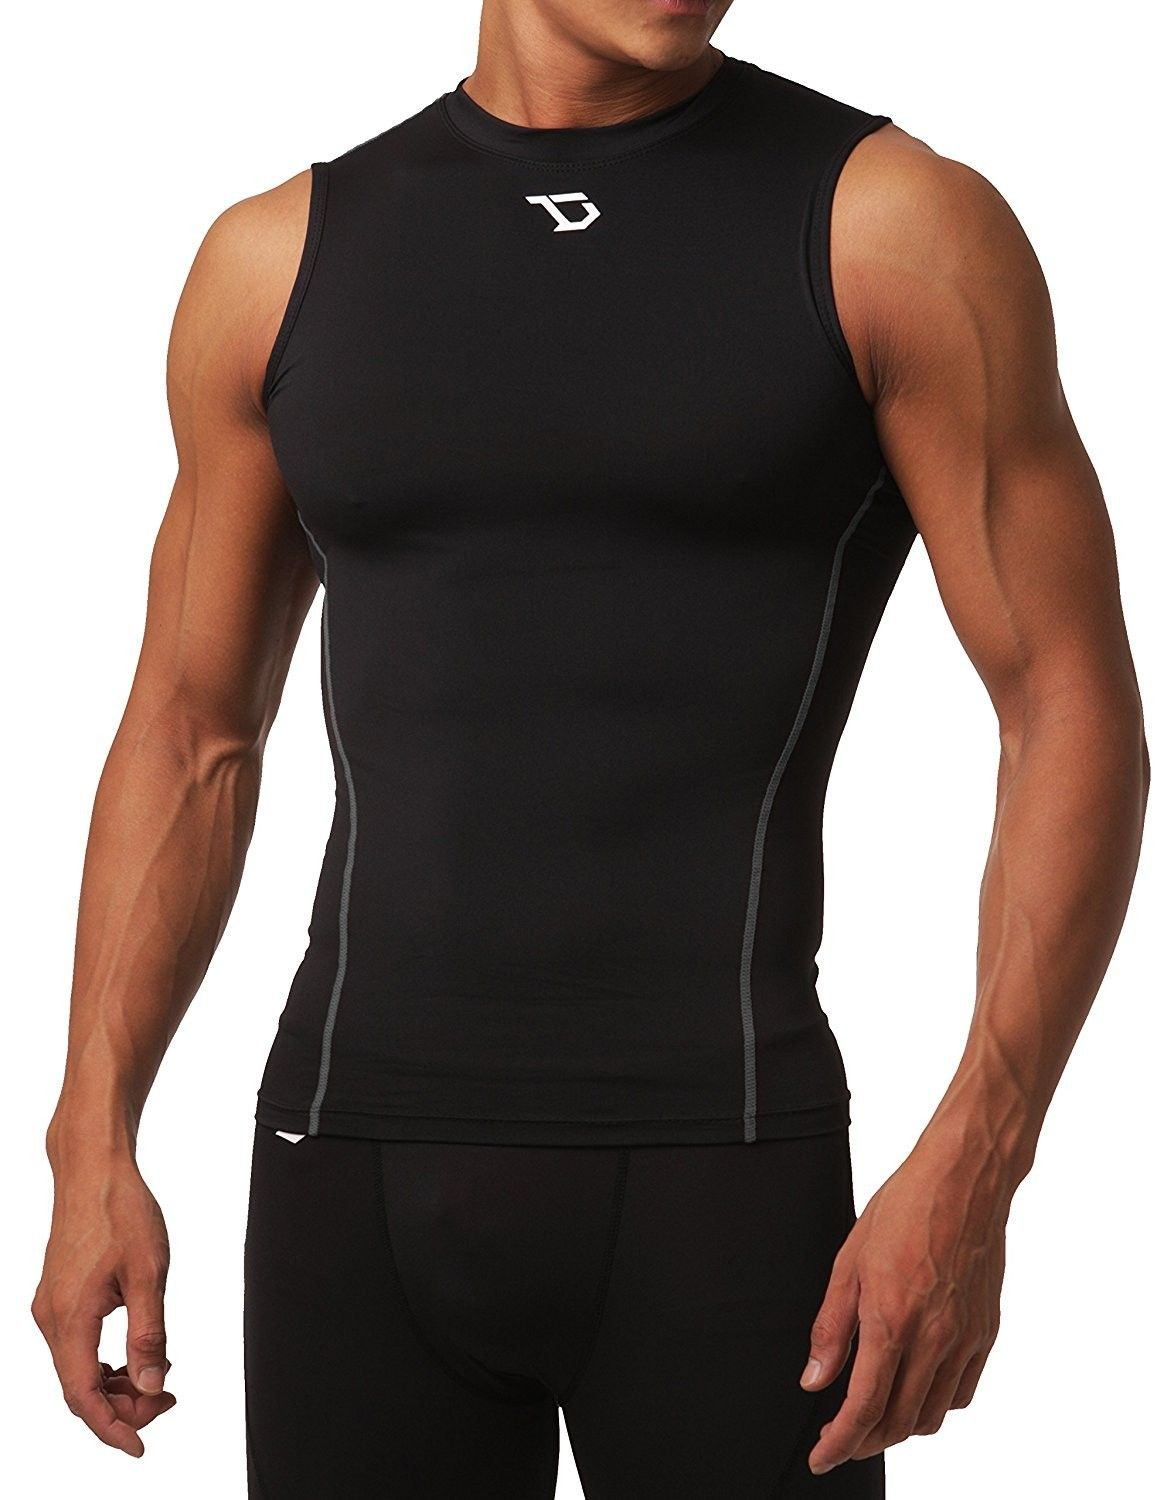 a8cc0d91 Men's Clothing, Active, Active Base Layers,Men's Cool Dry Compression  Baselayer Sleeveless Muscle T-Shirt - U10-blacksilver - C817AAHC4WQ  #Fashion #Active ...